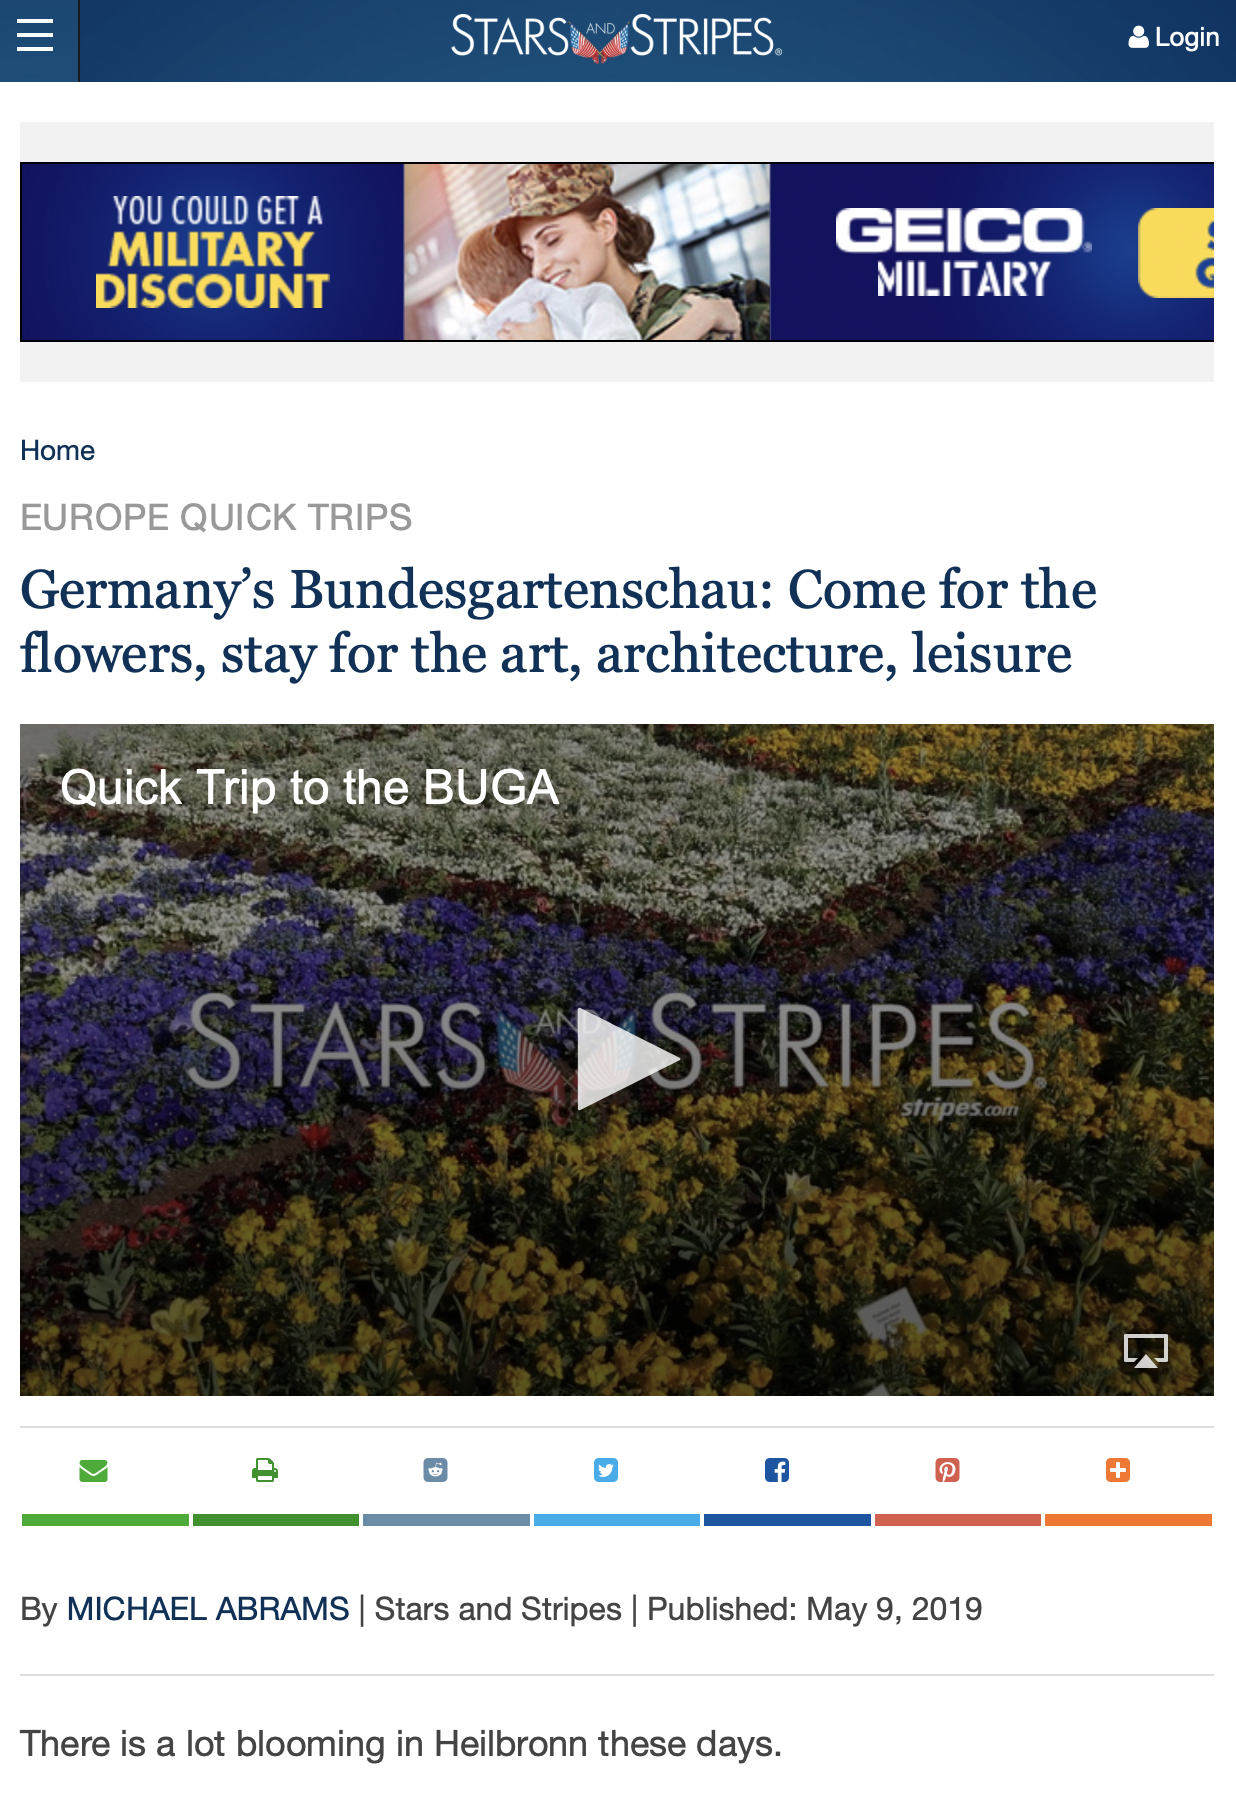 Germany's Bundesgartenschau: Come for the flowers, stay for the art, architecture, leisure